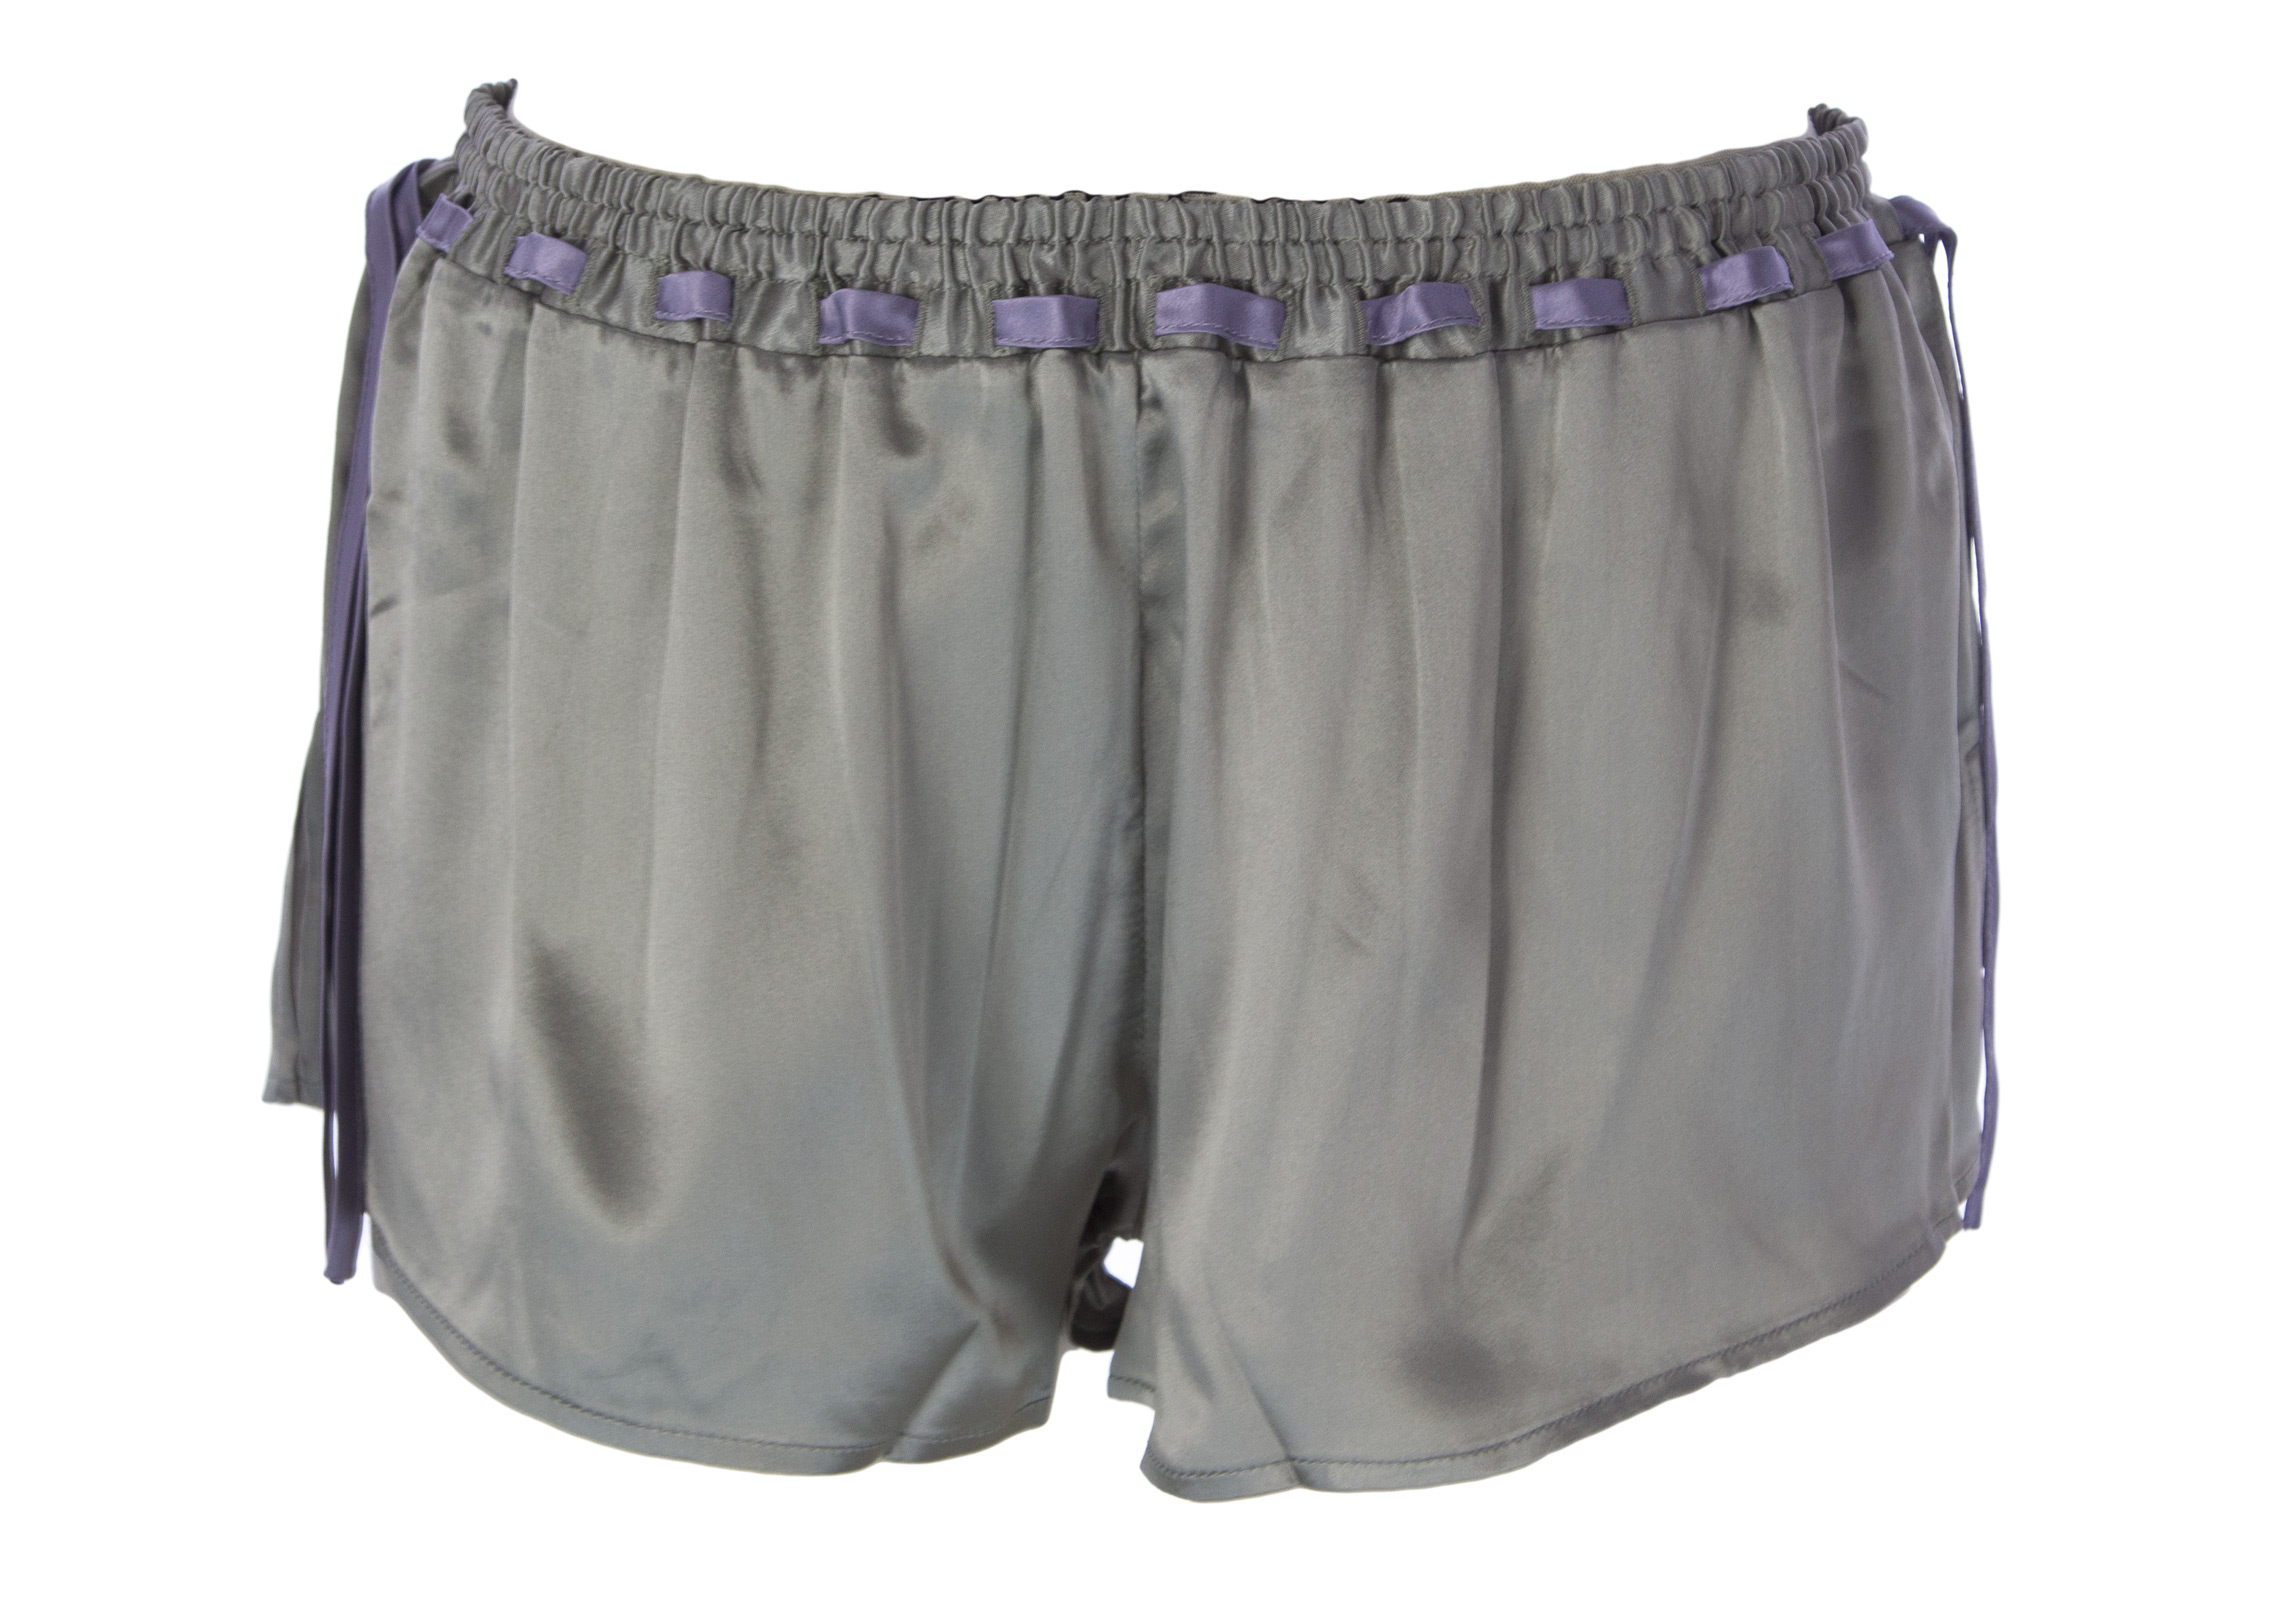 Zinke Intimates Women's Goodnight Lovely Shorts, Large, Pebble